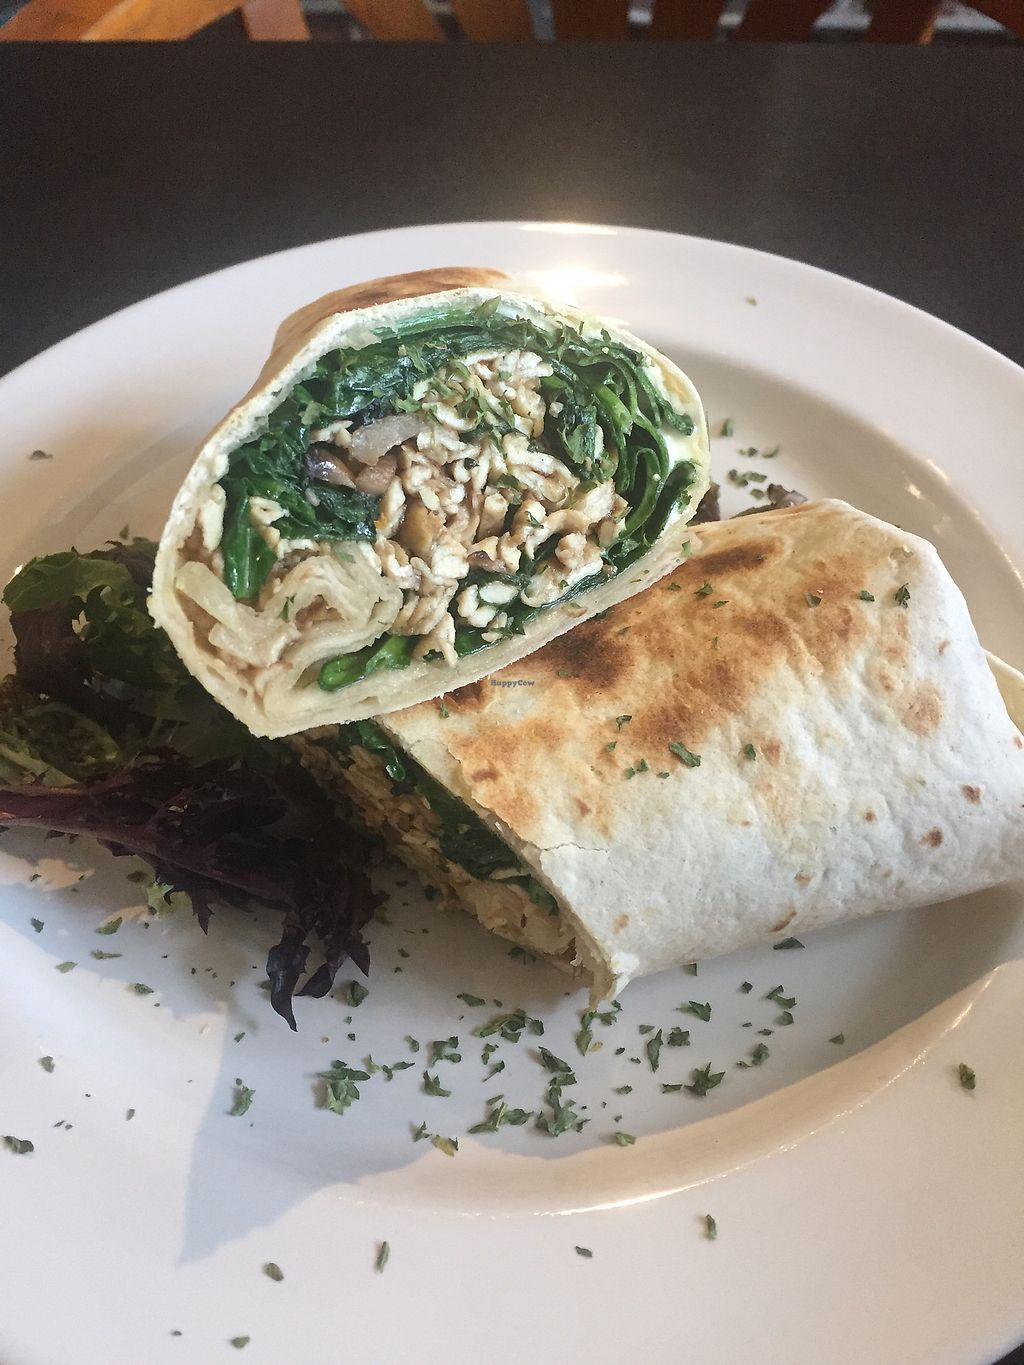 """Photo of Rustic Cosmo Cafe  by <a href=""""/members/profile/Gracem"""">Gracem</a> <br/>Tofu and mushroom scramble with spinach in a wrap <br/> March 9, 2018  - <a href='/contact/abuse/image/113853/368625'>Report</a>"""